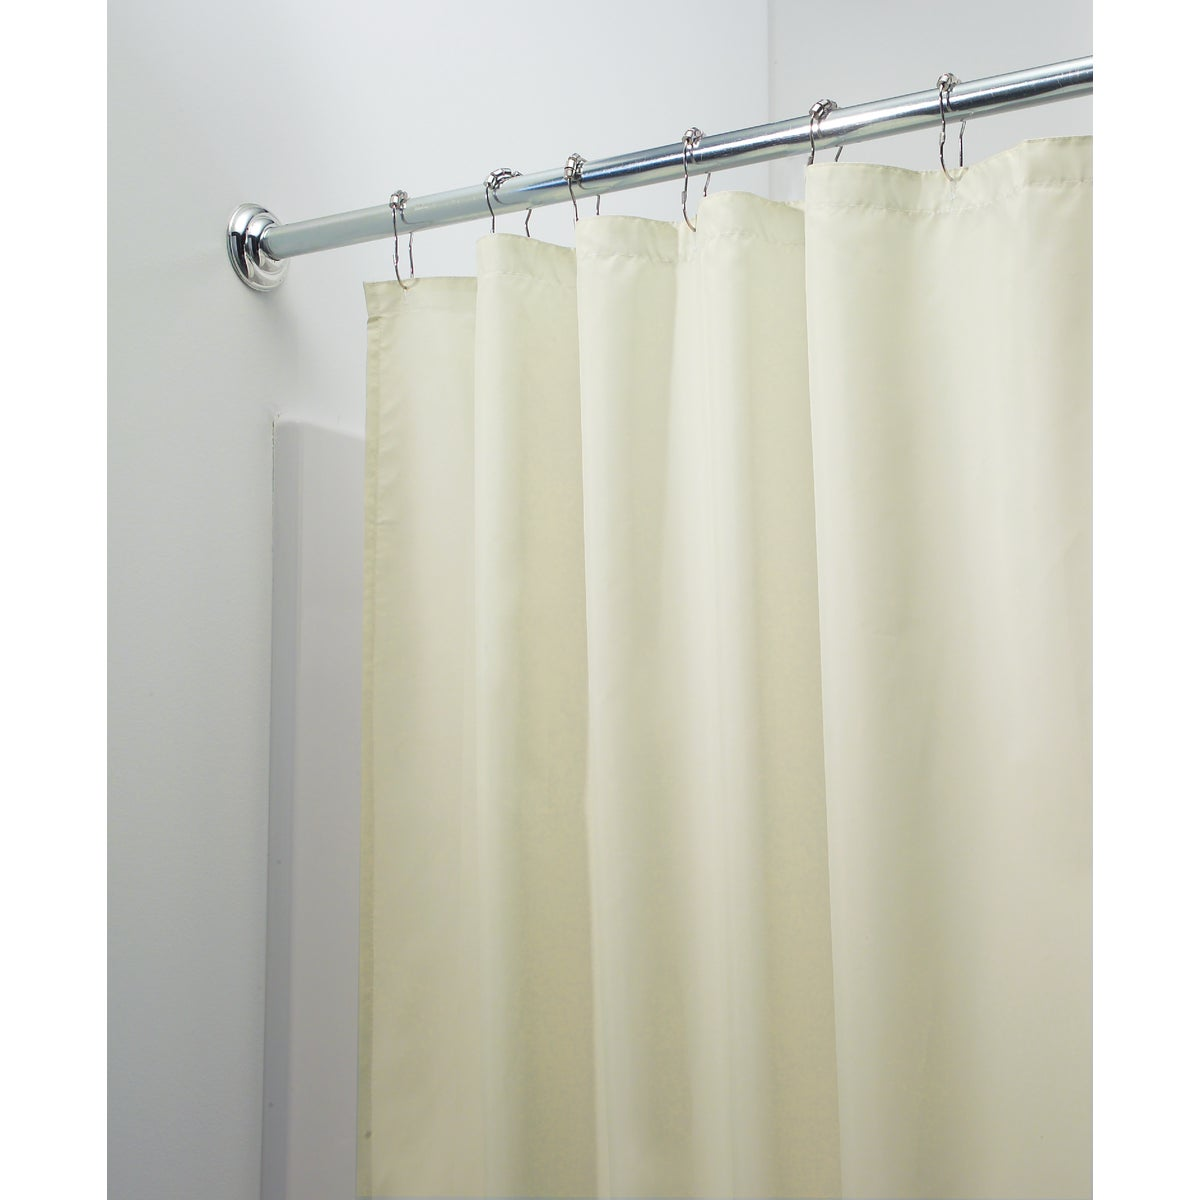 SND POLY SHOWER CURTAIN